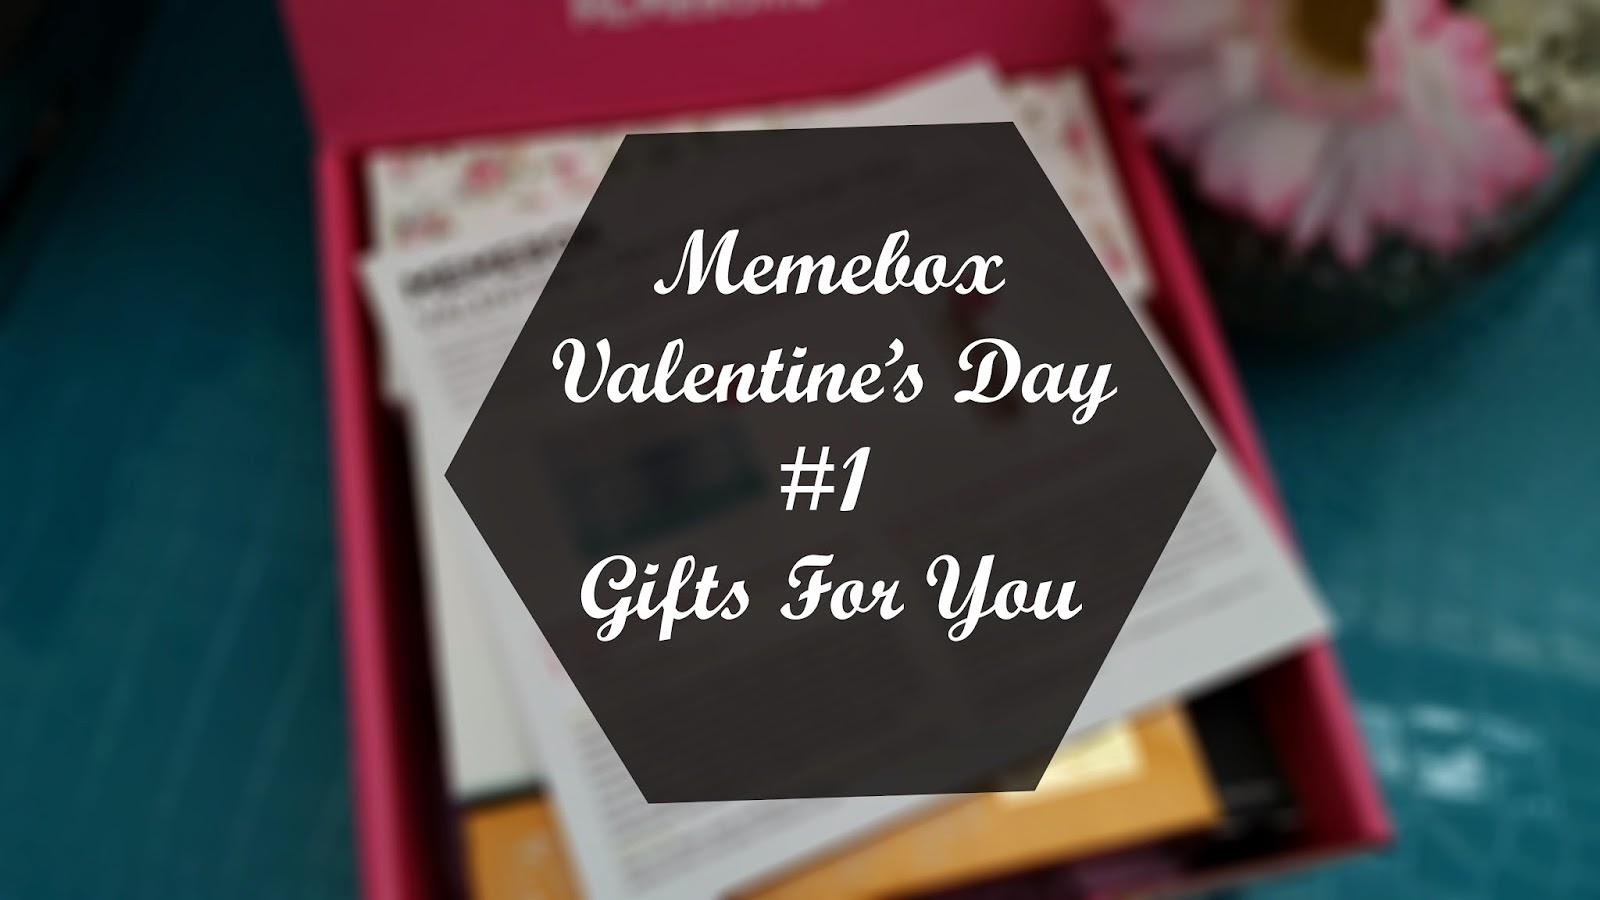 Unboxing: Memebox Valentine's Day #1 Gift For You